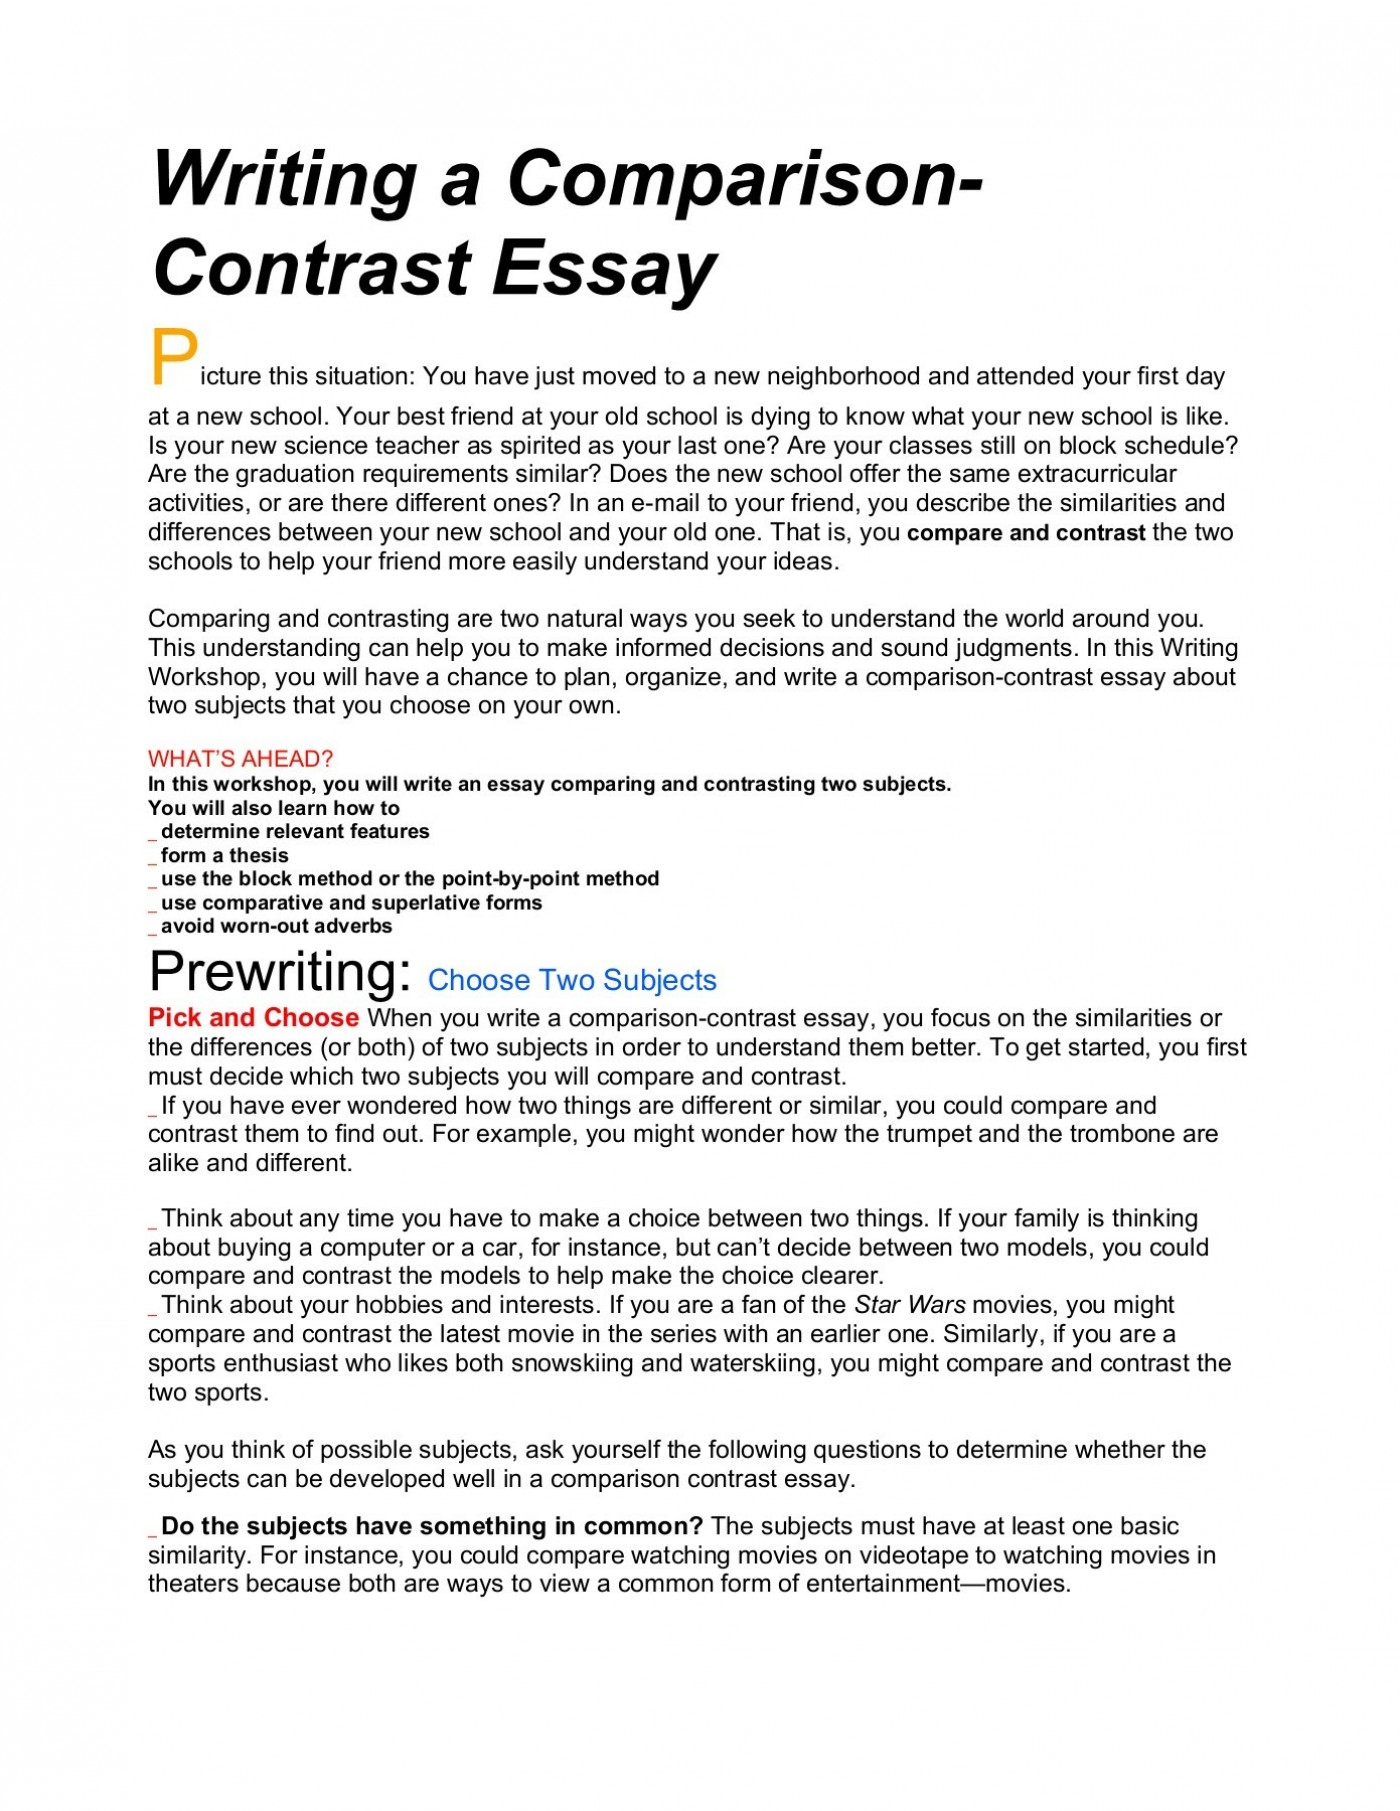 010 How To Write Compare And Contrast Essay Outstanding A On Two Poems An Introduction Conclusion For Middle School 1400